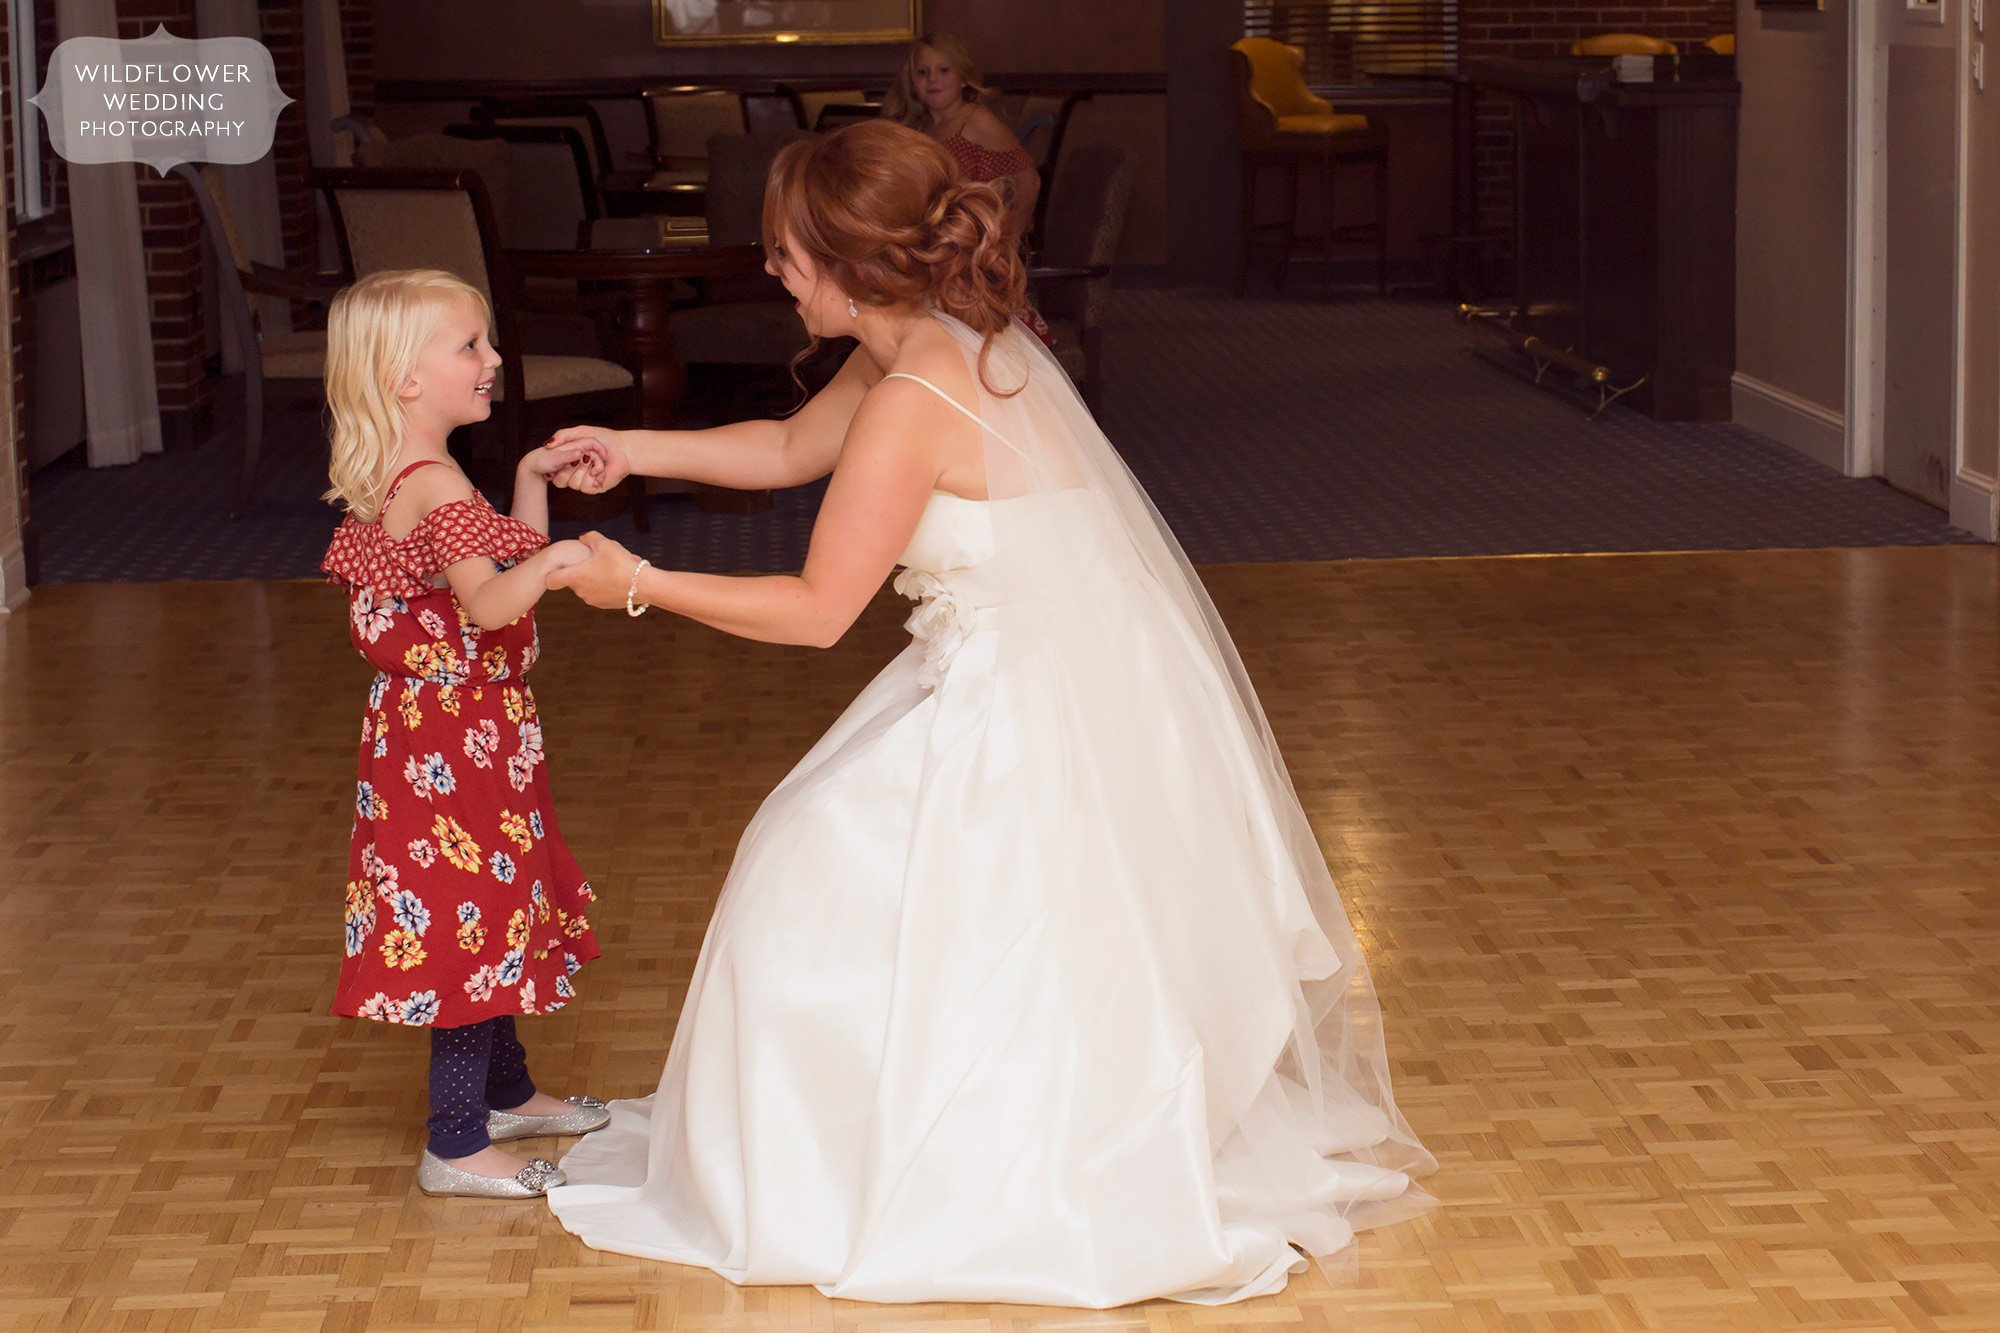 Bride dancing with flower girl at Jeff City Country Club wedding.